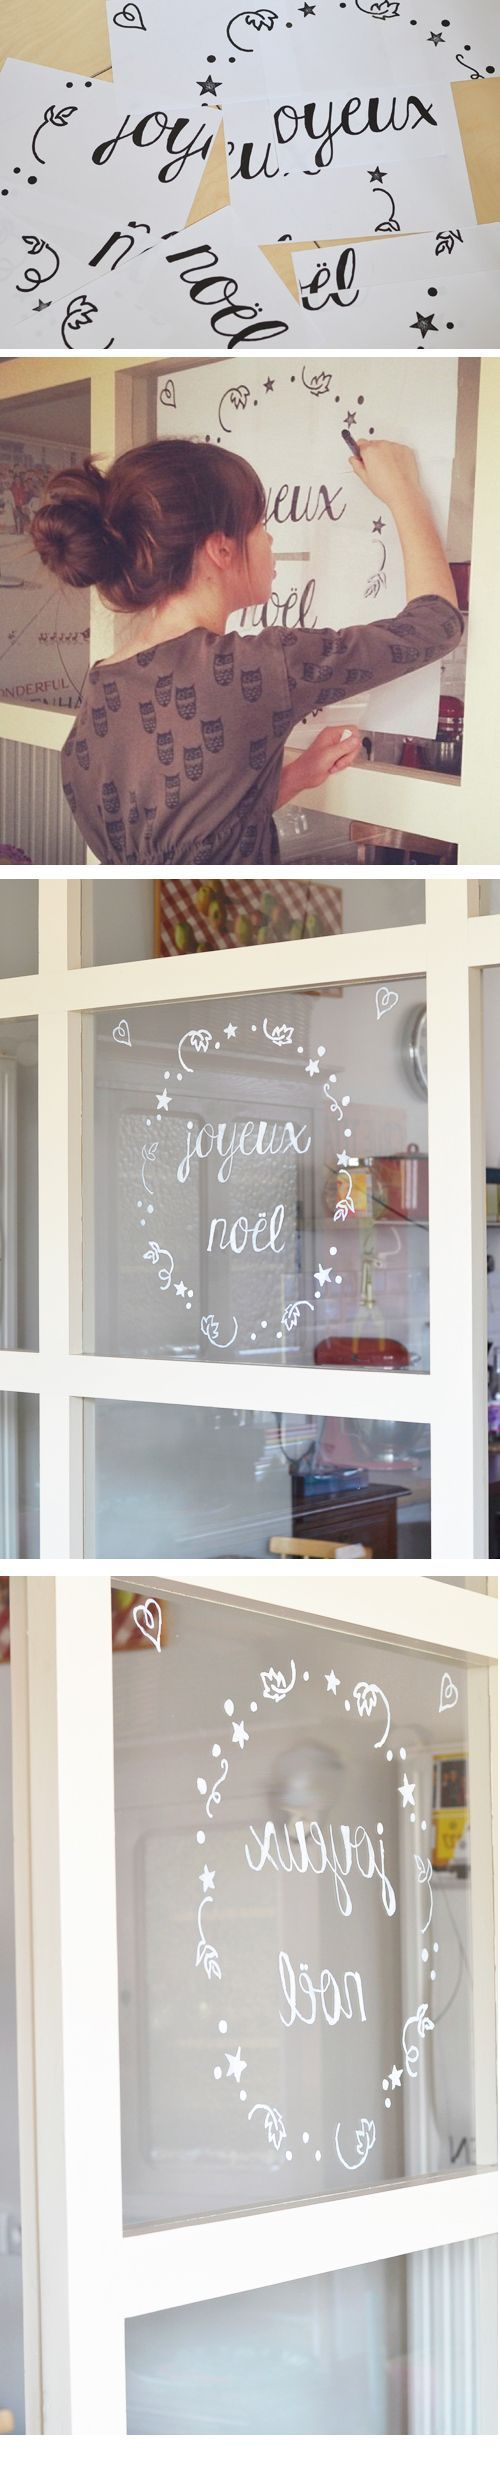 1000 id es sur le th me hiboux blancs sur pinterest for Decoration vitres fenetres